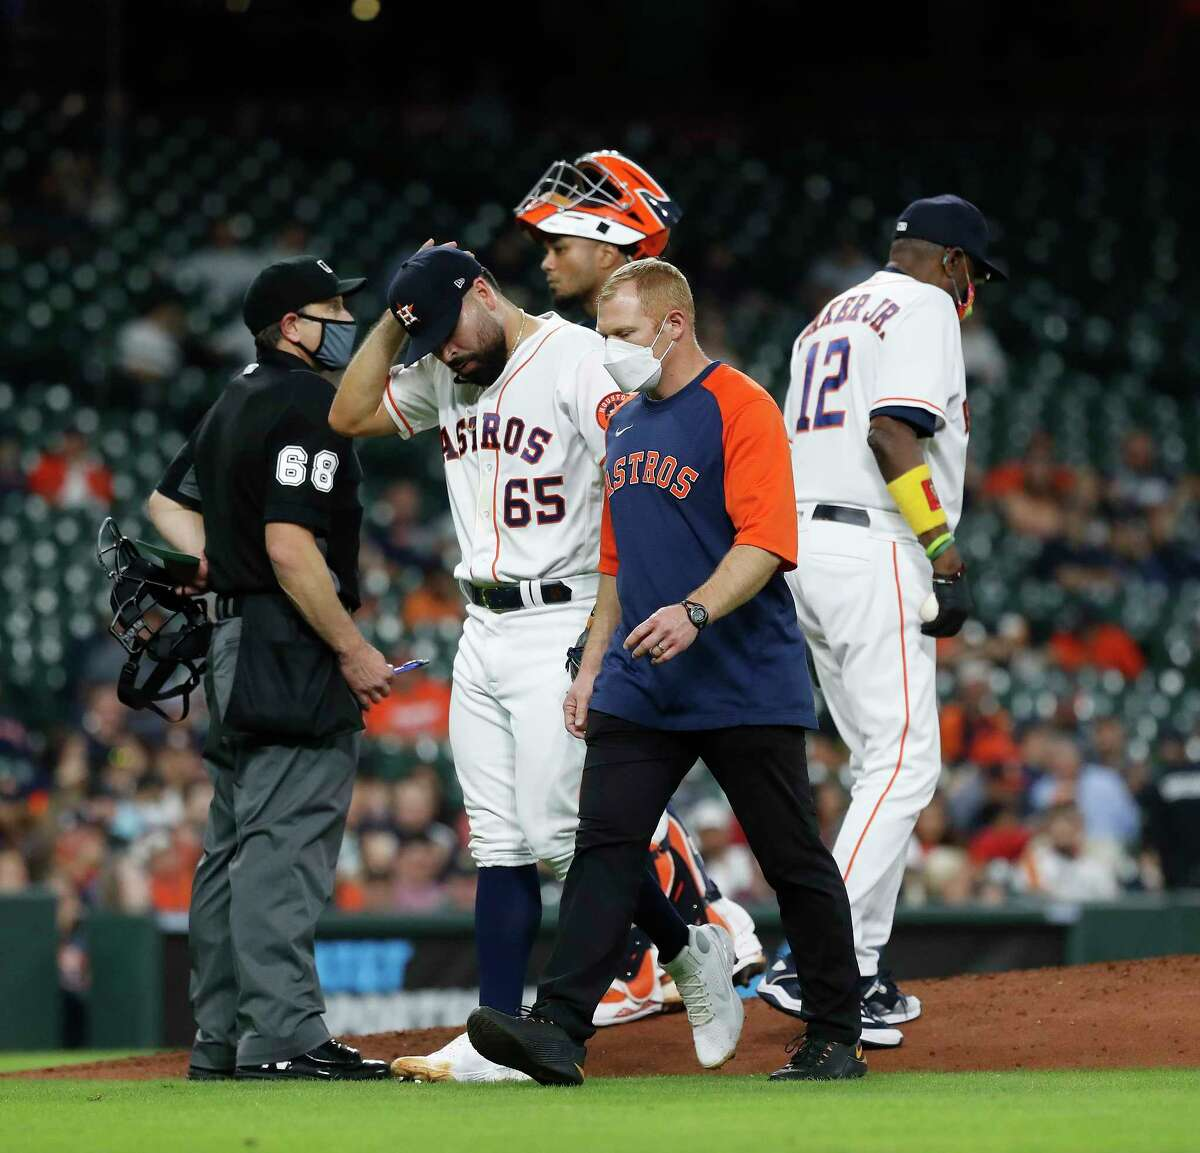 Astros starting pitcher Jose Urquidy departs the mound with athletic trainer Lee Meyer during the fourth inning Wednesday night at Minute Maid Park.